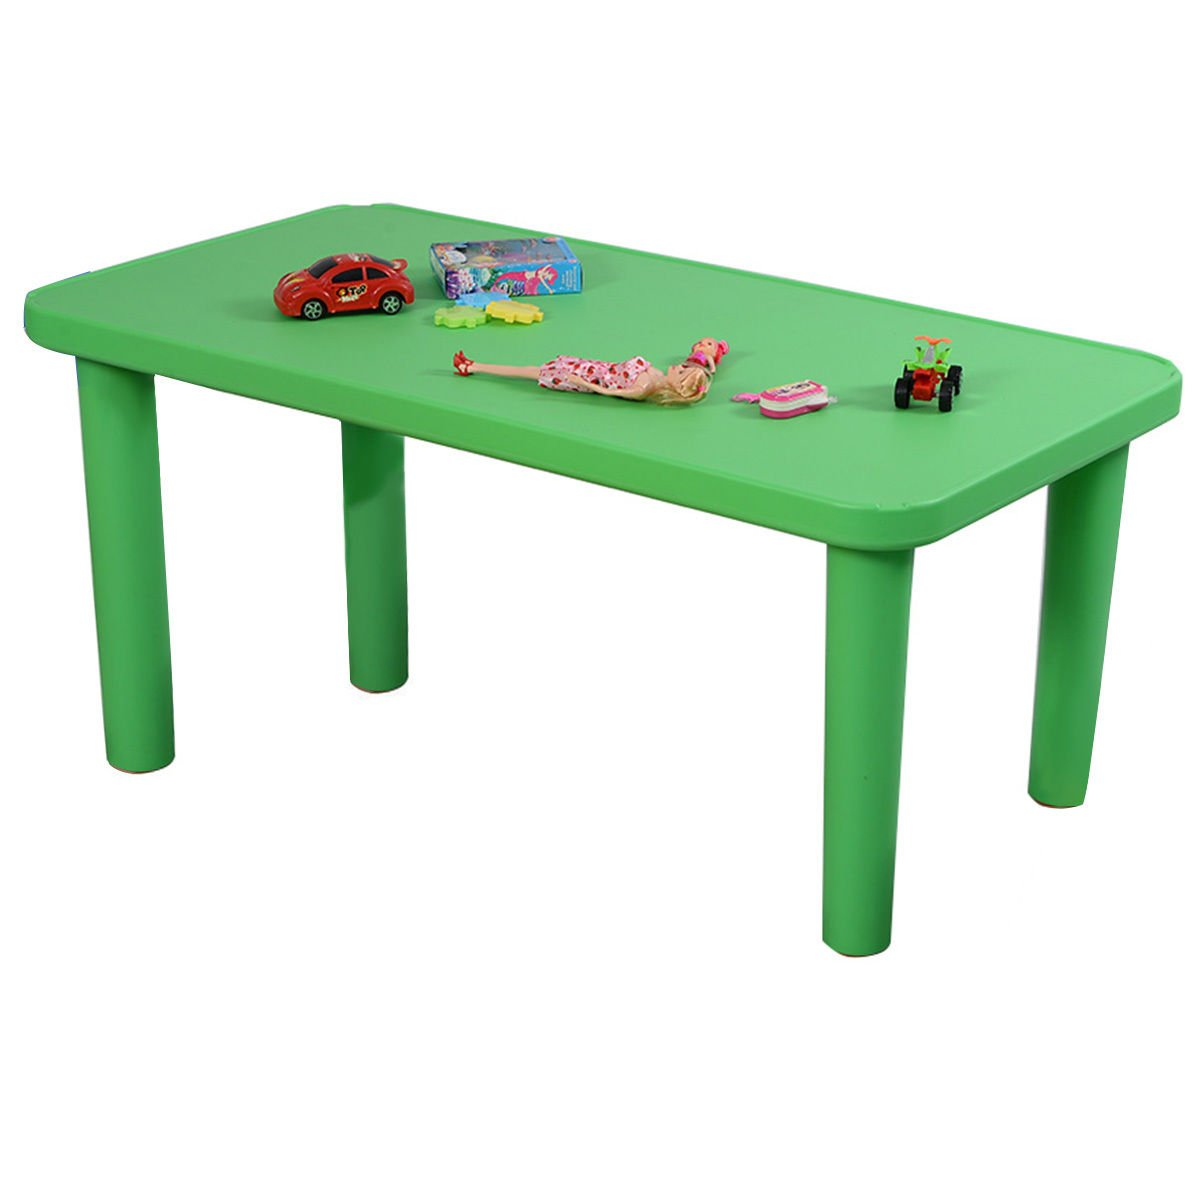 amazoncom costzon kids portable plastic table learn and play activityschool home furniture kitchen  dining. amazoncom costzon kids portable plastic table learn and play